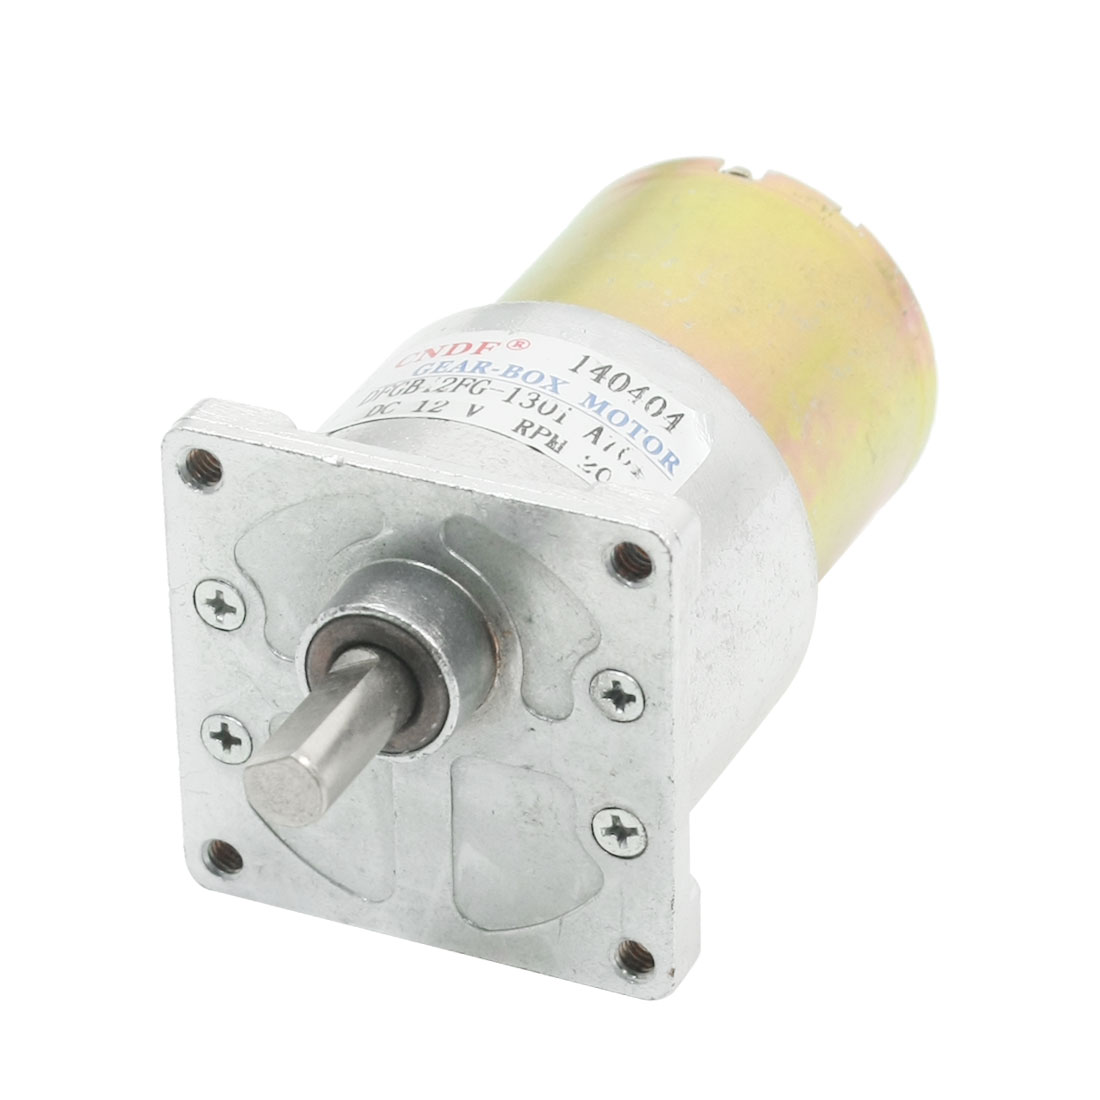 Cylinder 3mm Thread Hole Dia Magnetic Gear Box Motor DC12V 20RPM